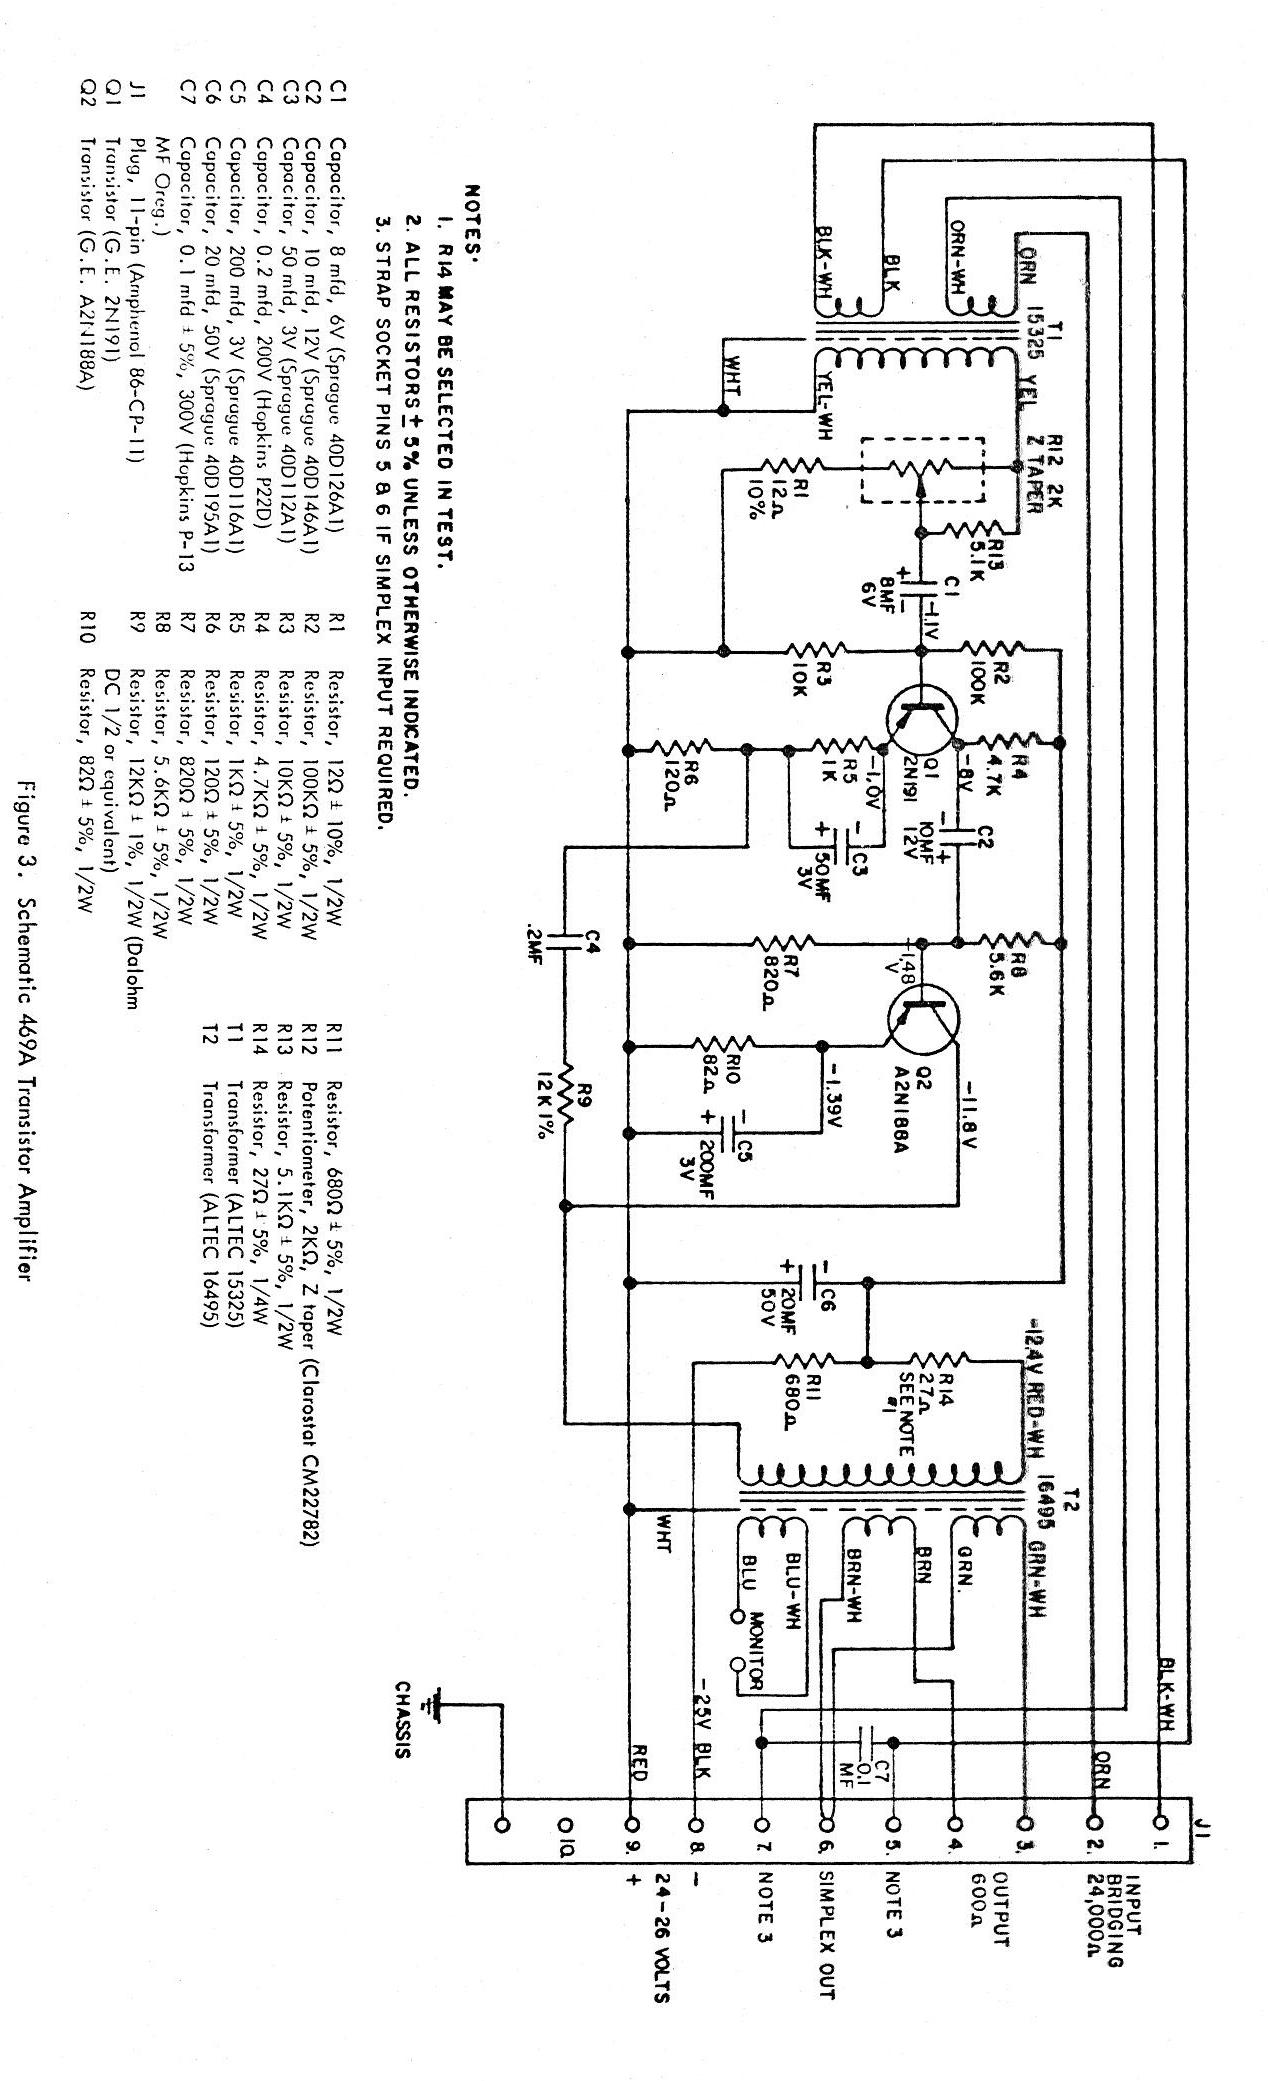 Simplex Day Tanks Fuel Wiring Diagram - Wiring Diagrams Dock on